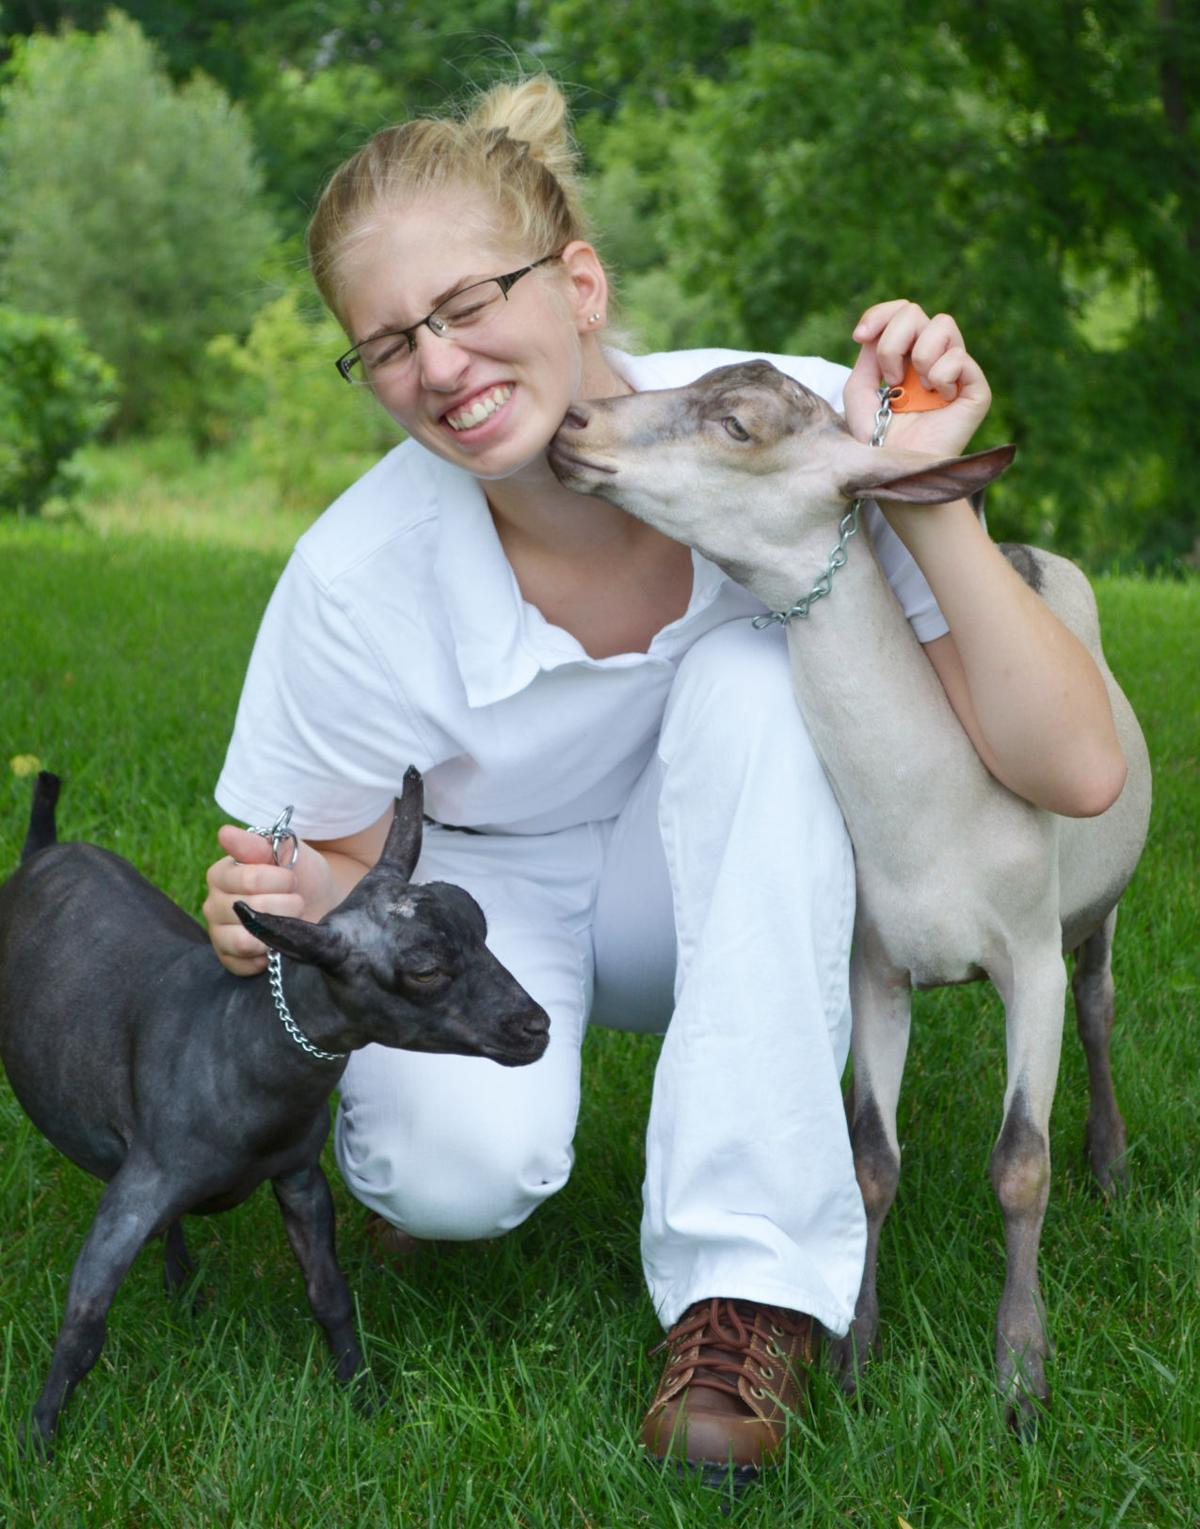 a o w story raising goats is fuel behind c f s rachael leystra s a o w story raising goats is fuel behind c f s rachael leystra s strong work ethic